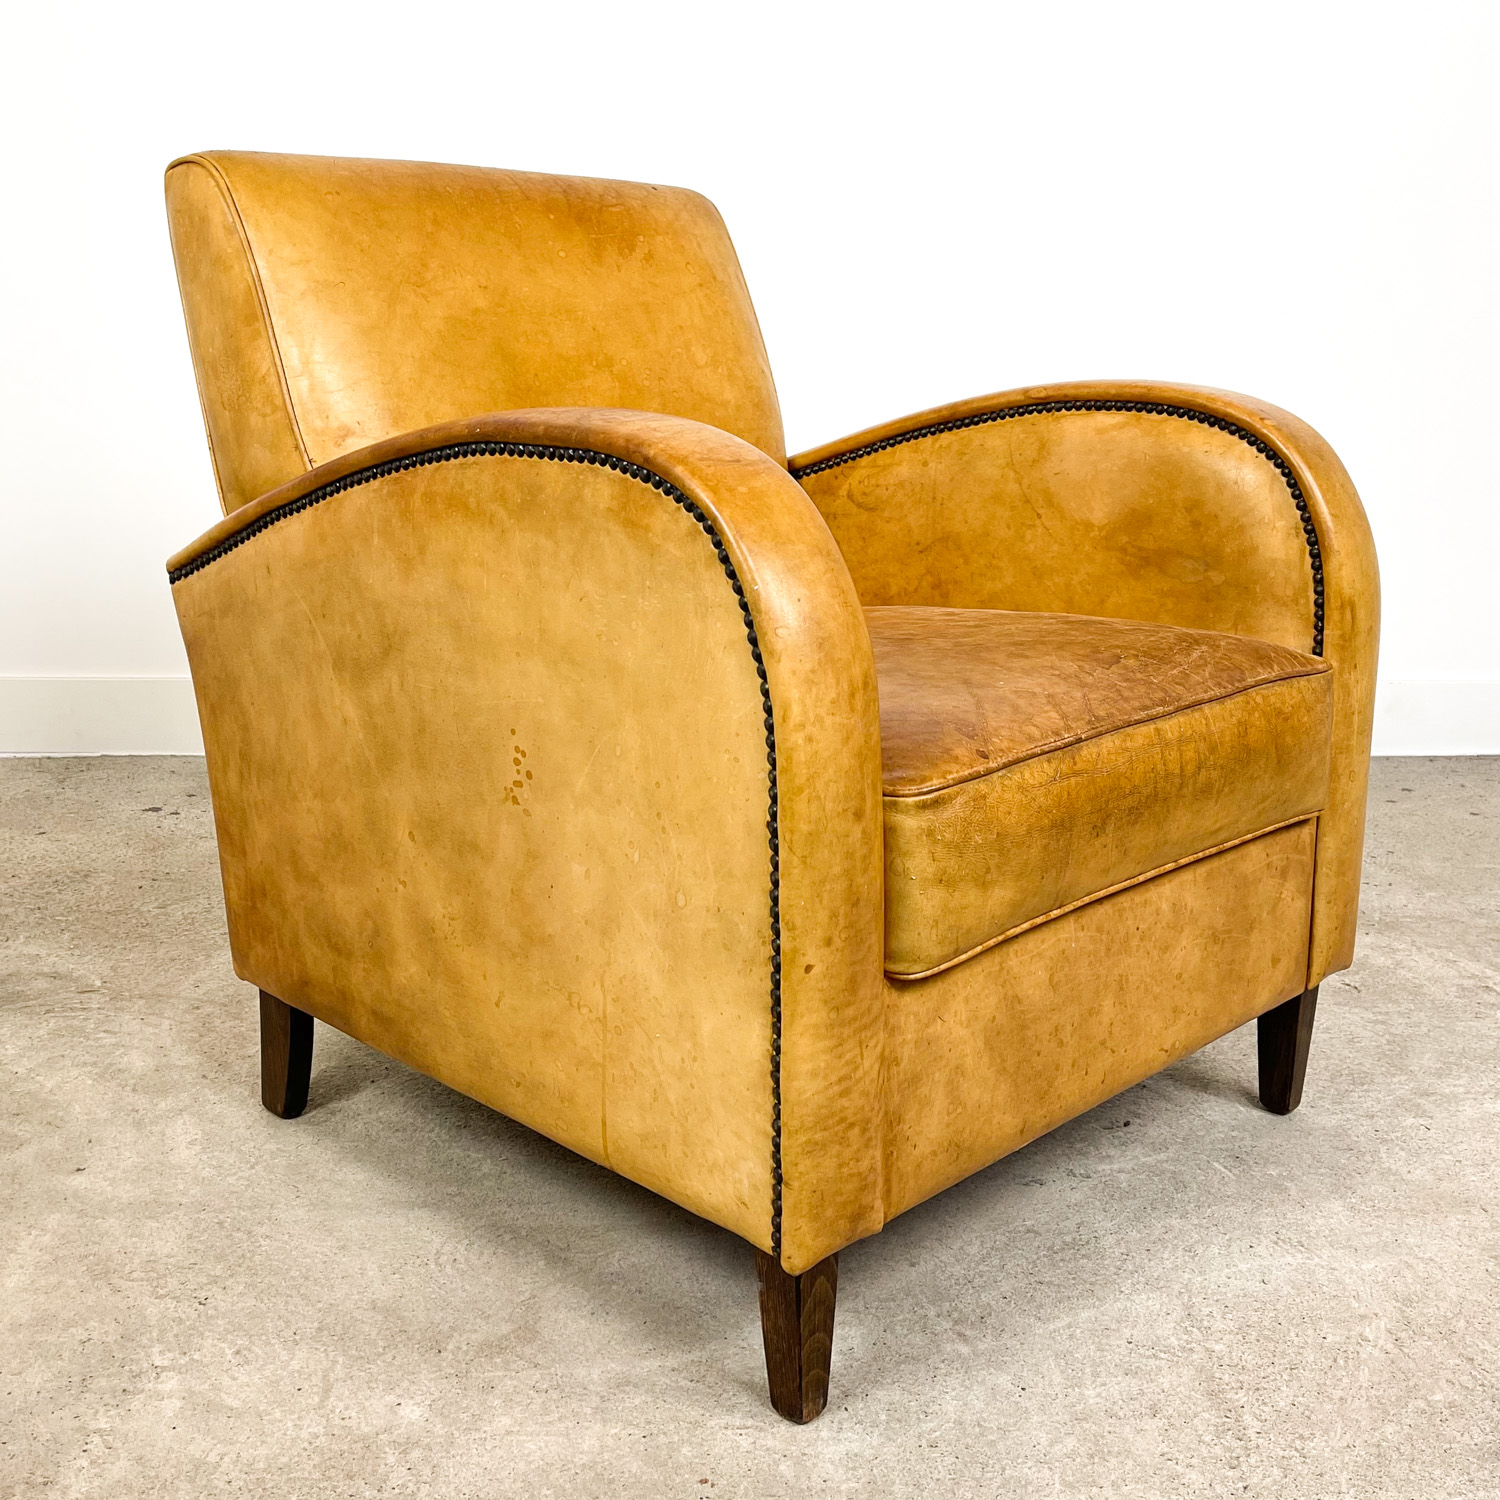 Vintage light brown sheep leather armchair